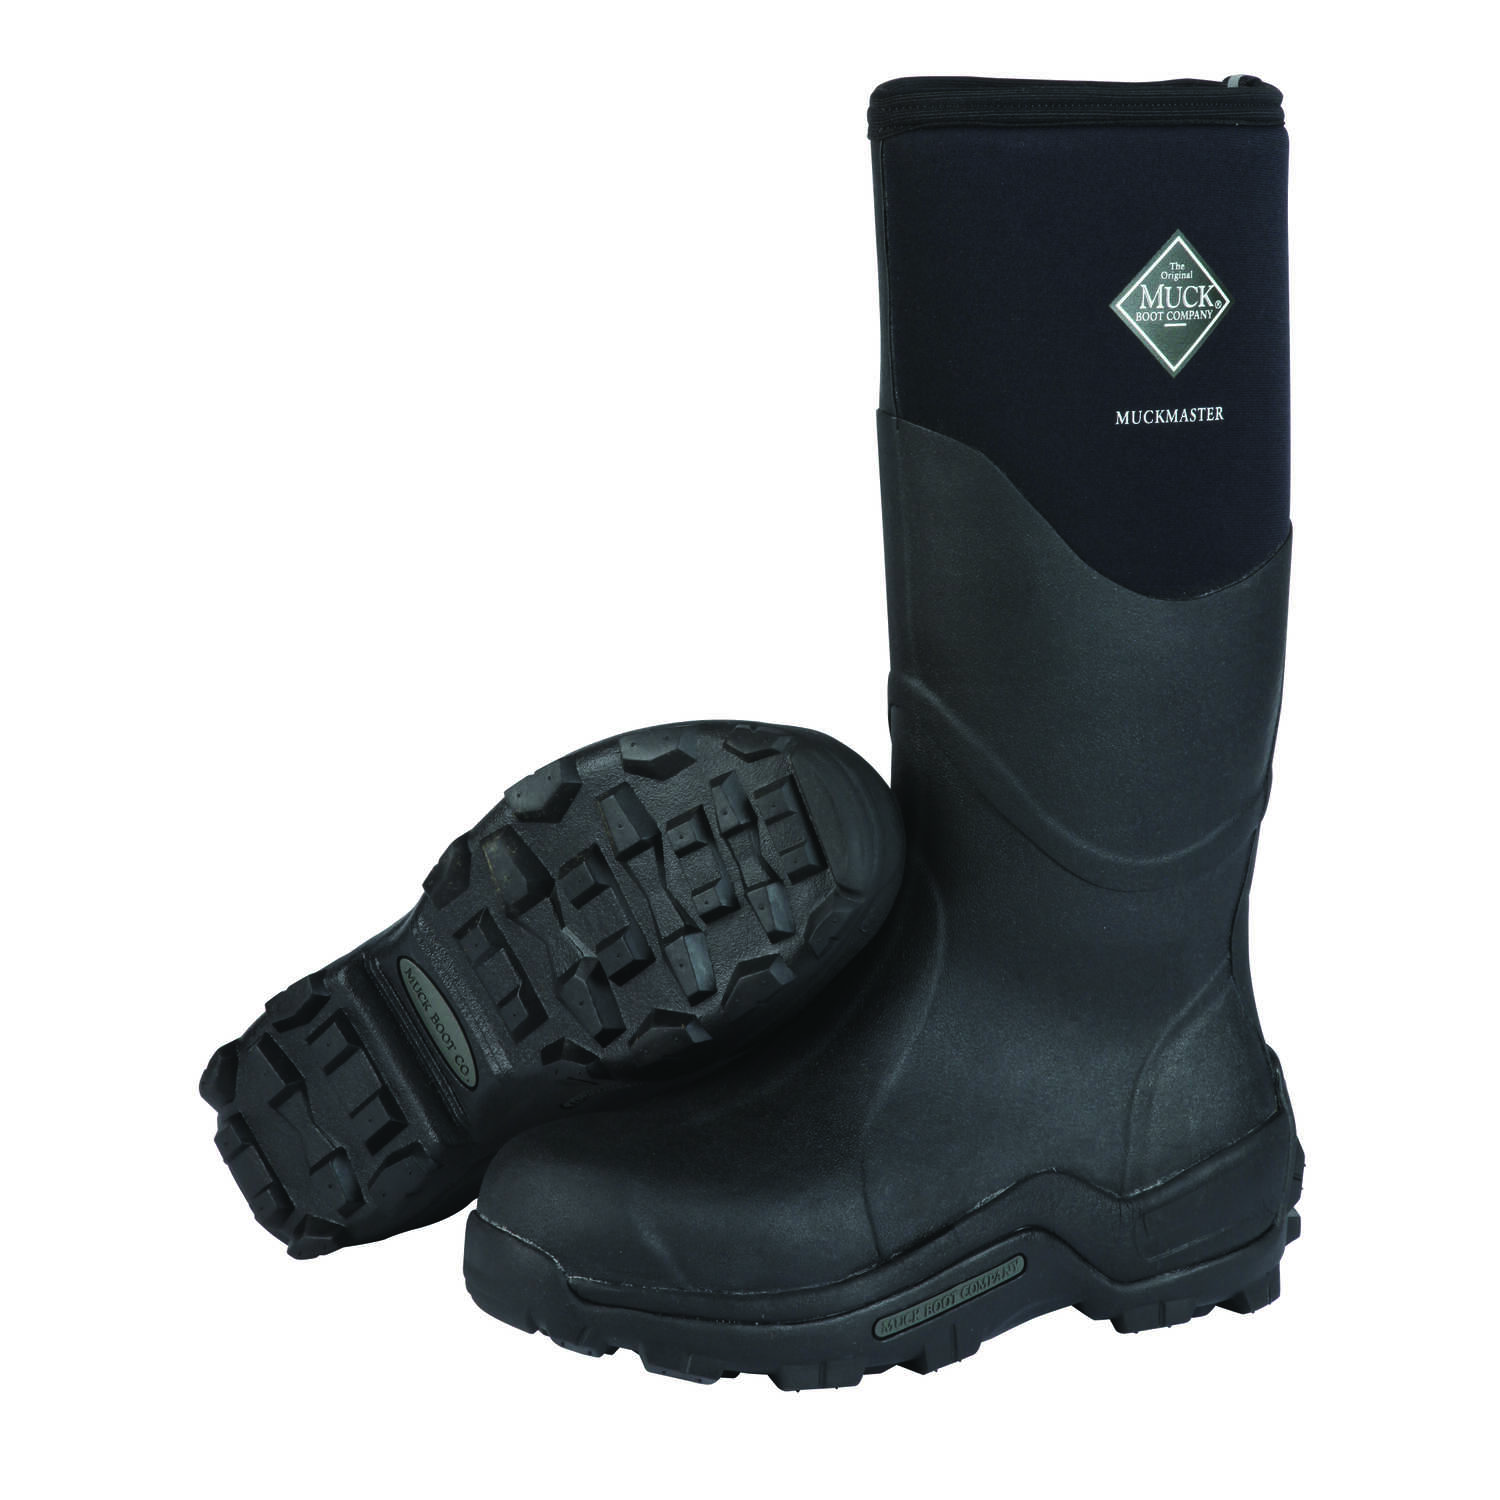 The Original Muck Boot Company  Muckmaster Hi  Men's  Boots  7 US  Black